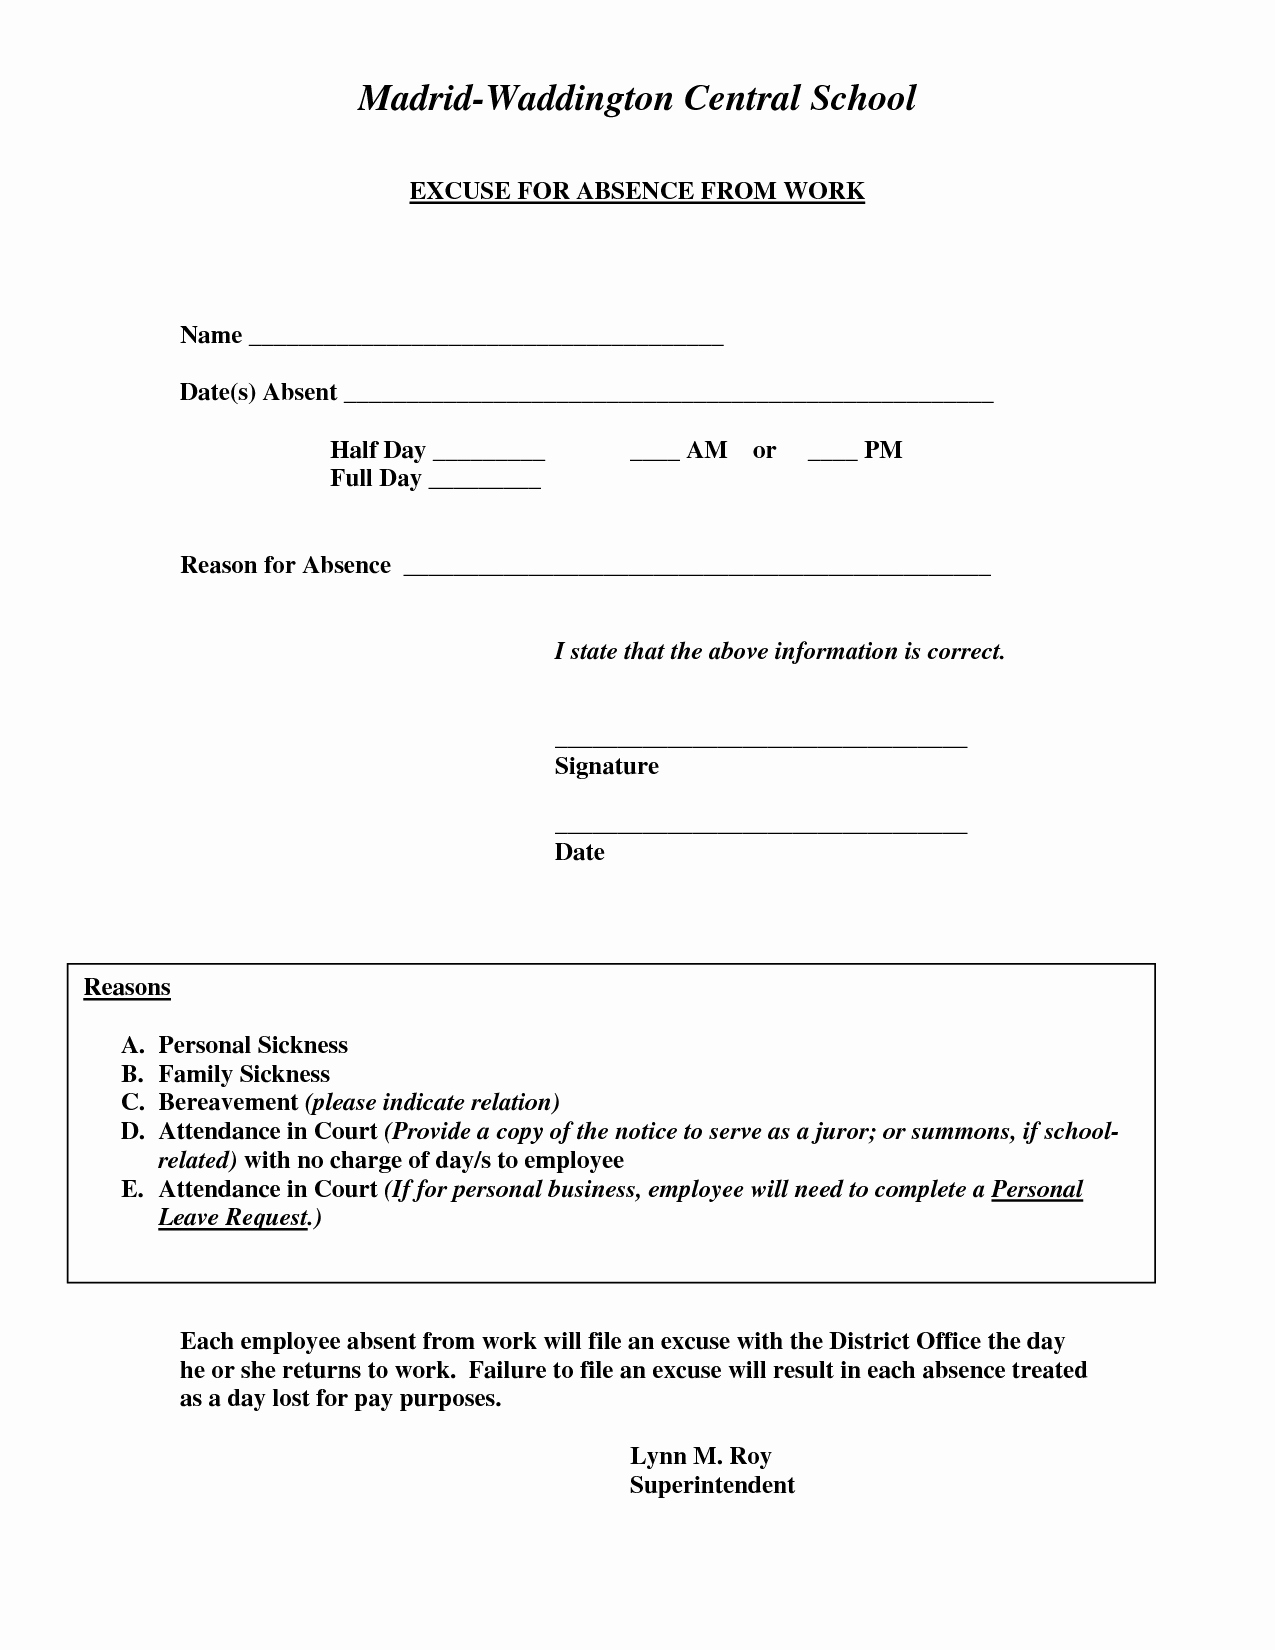 Free Doctors Note Template Unique Doctors Excuse for Work Template